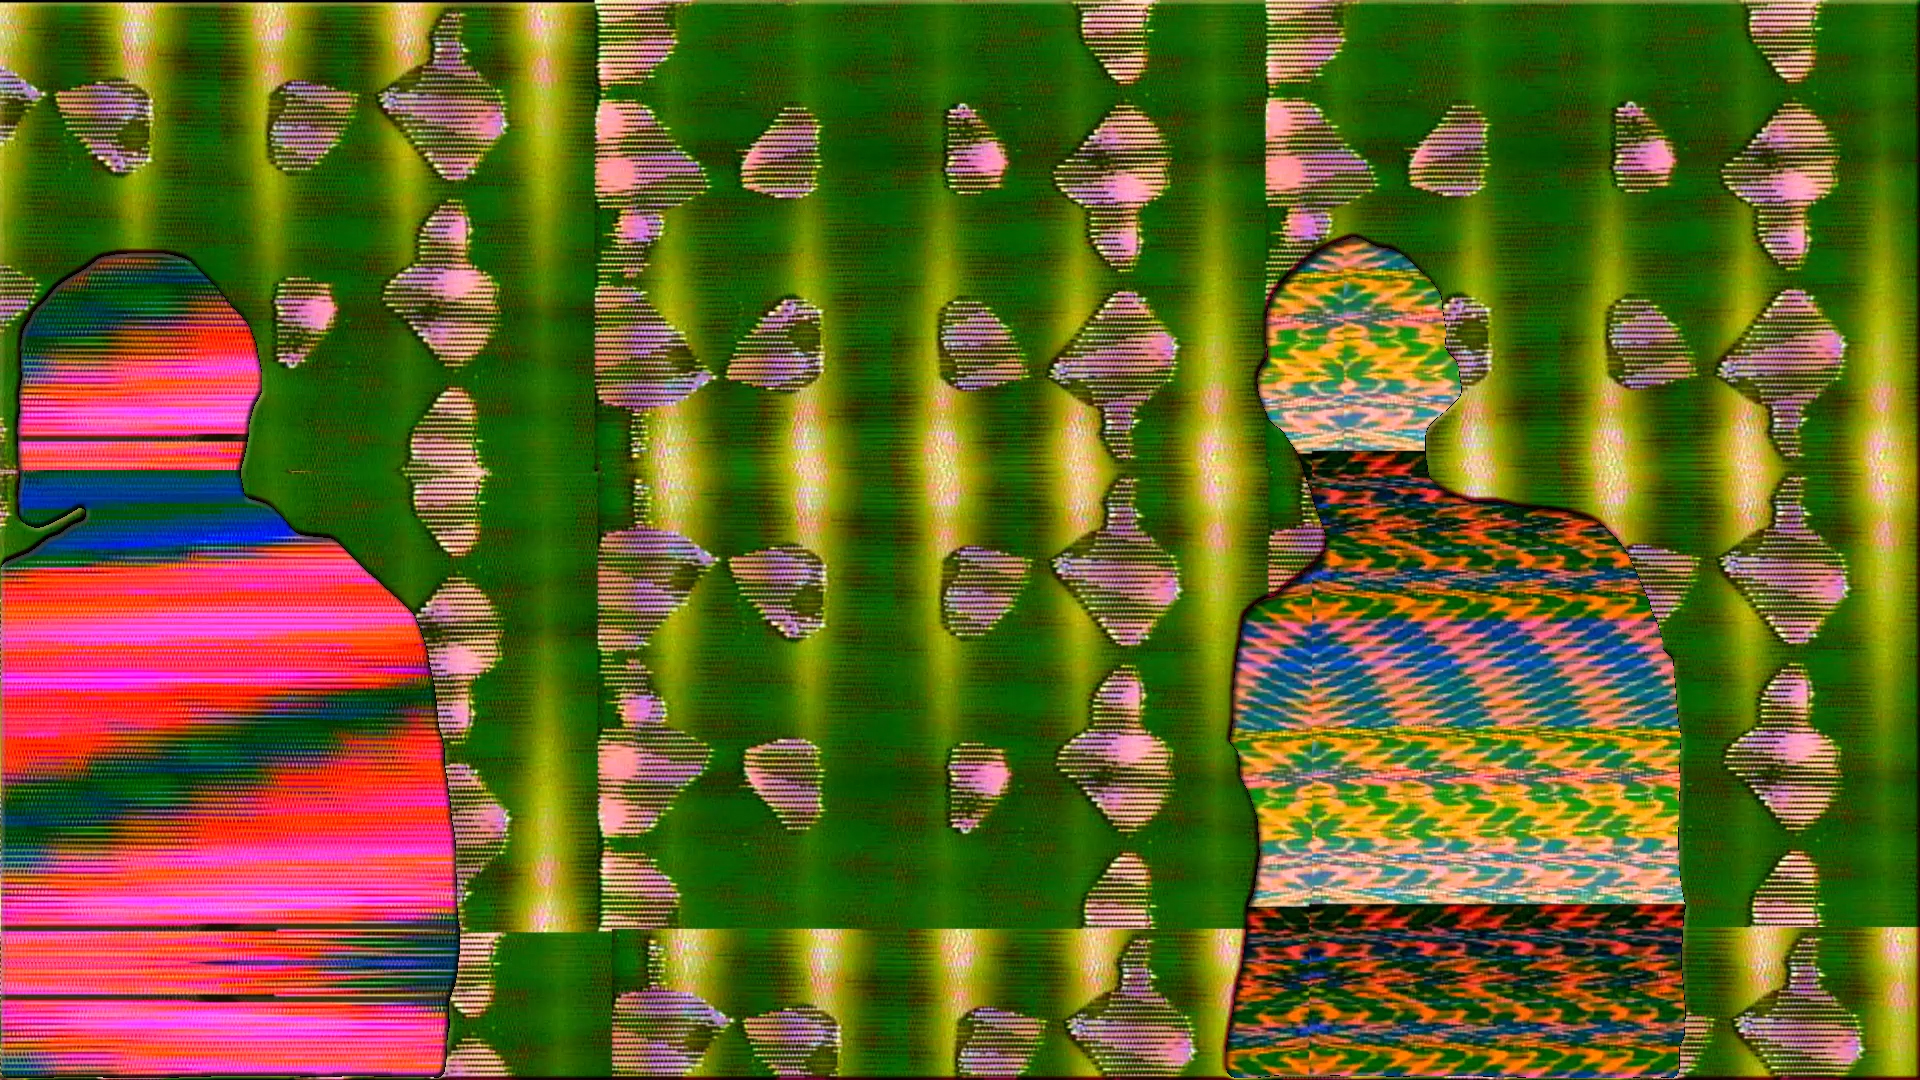 Two colorful and glitchy figures stand in front of a glitching green background.